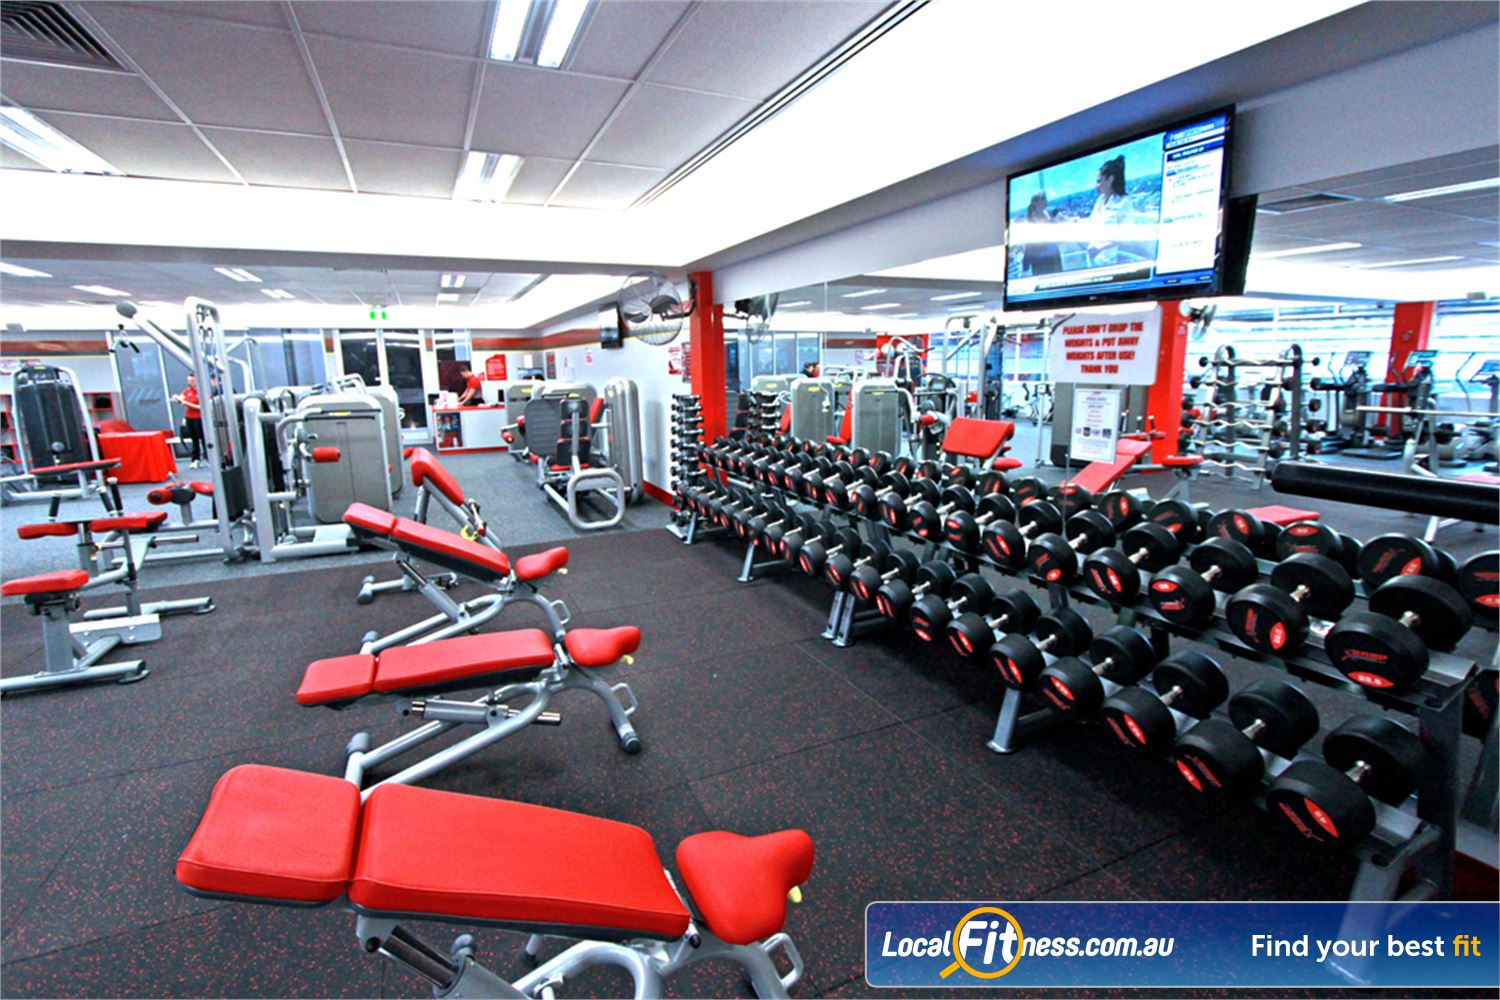 Snap Fitness Near Reservoir Our 24 hour Preston gym is fully equipped with dumbbells and barbells.